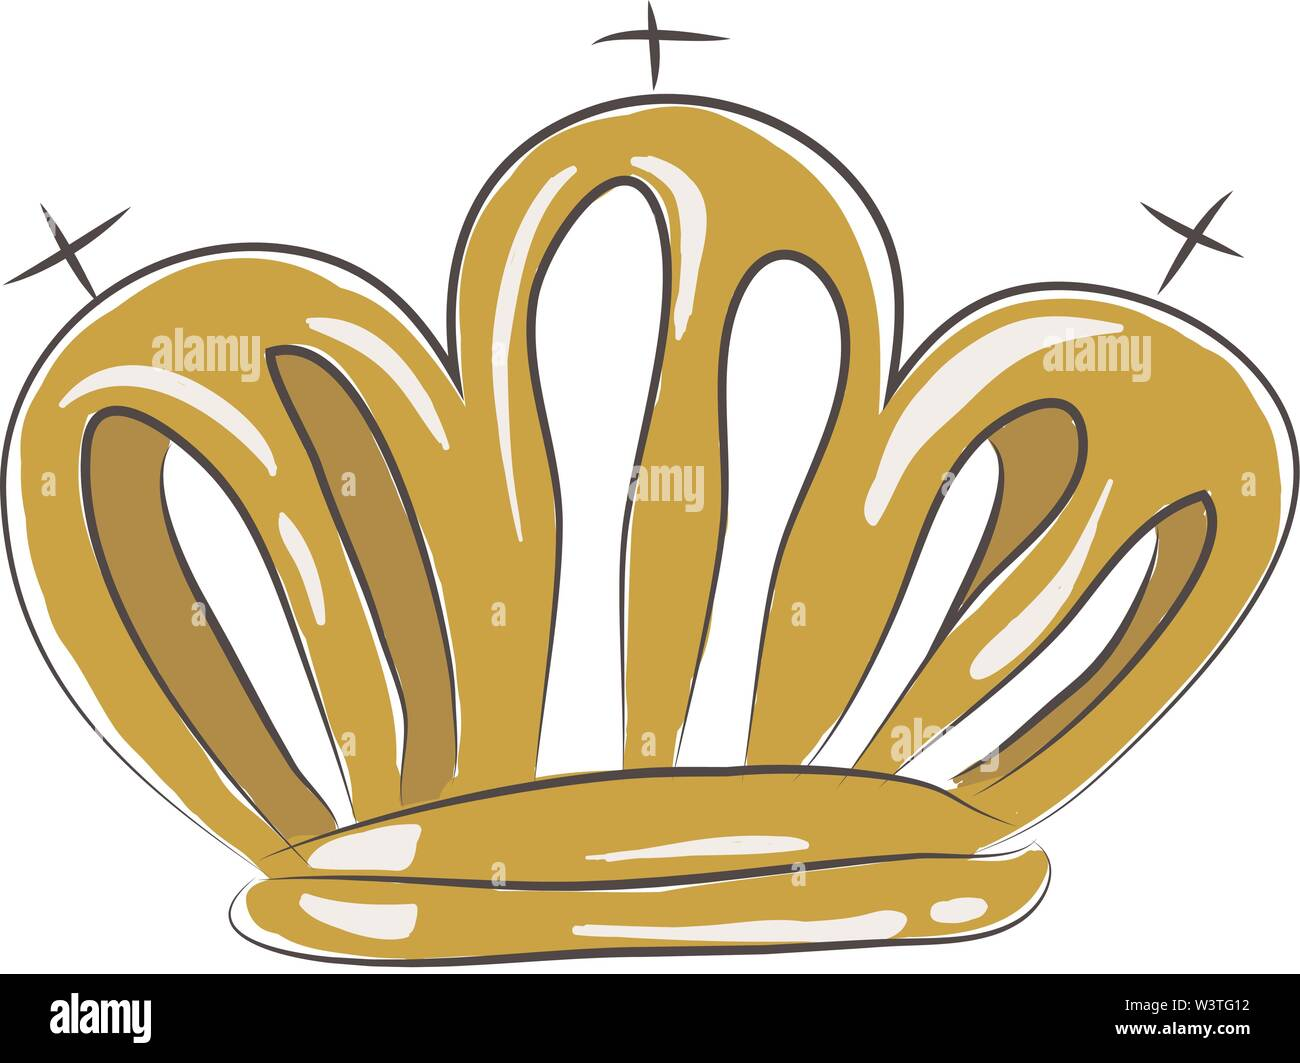 A royal shinning crown in gold, vector, color drawing or illustration. - Stock Image